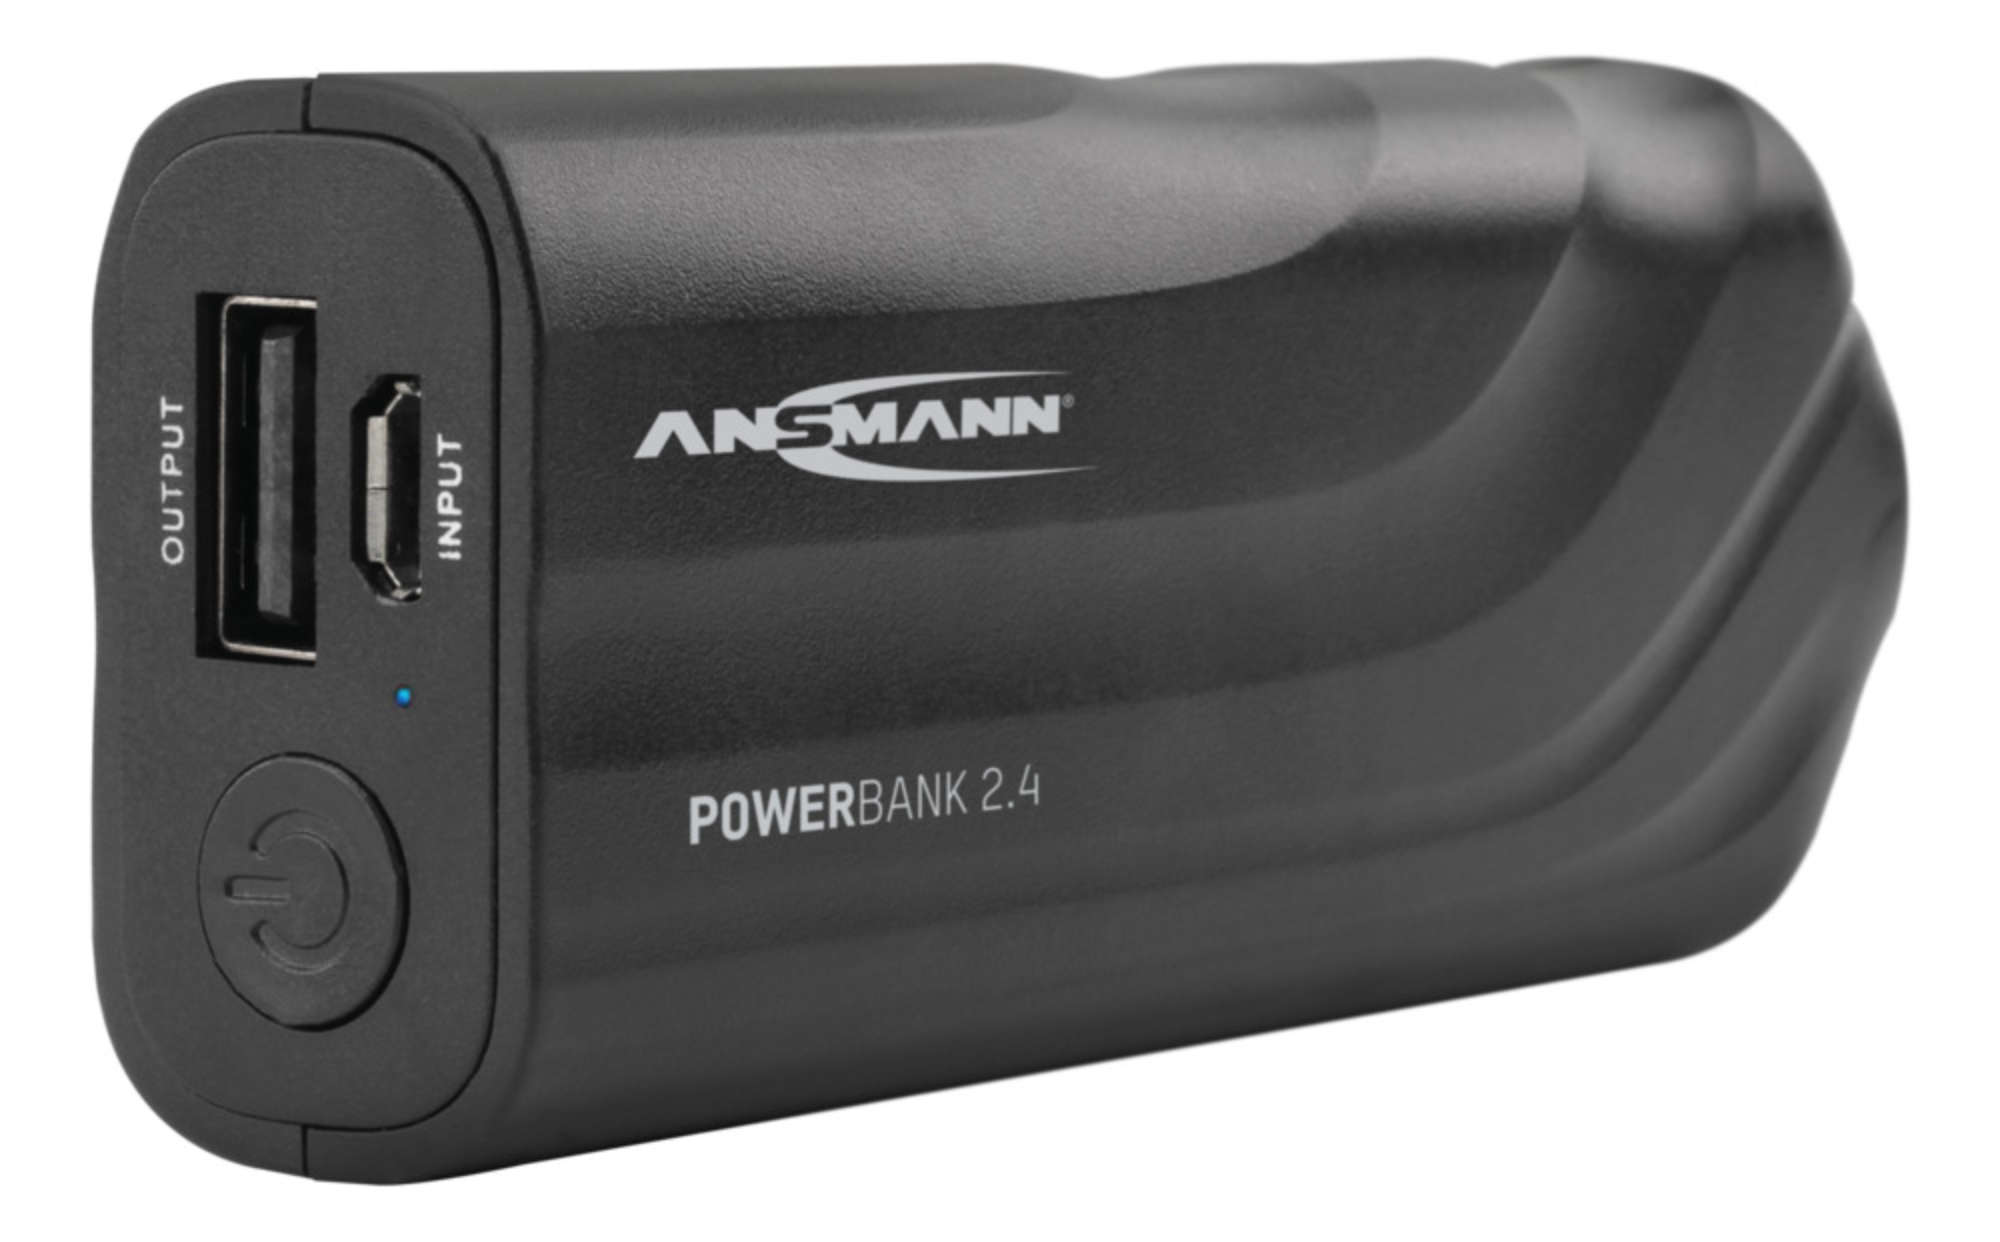 Powerbank 2.4